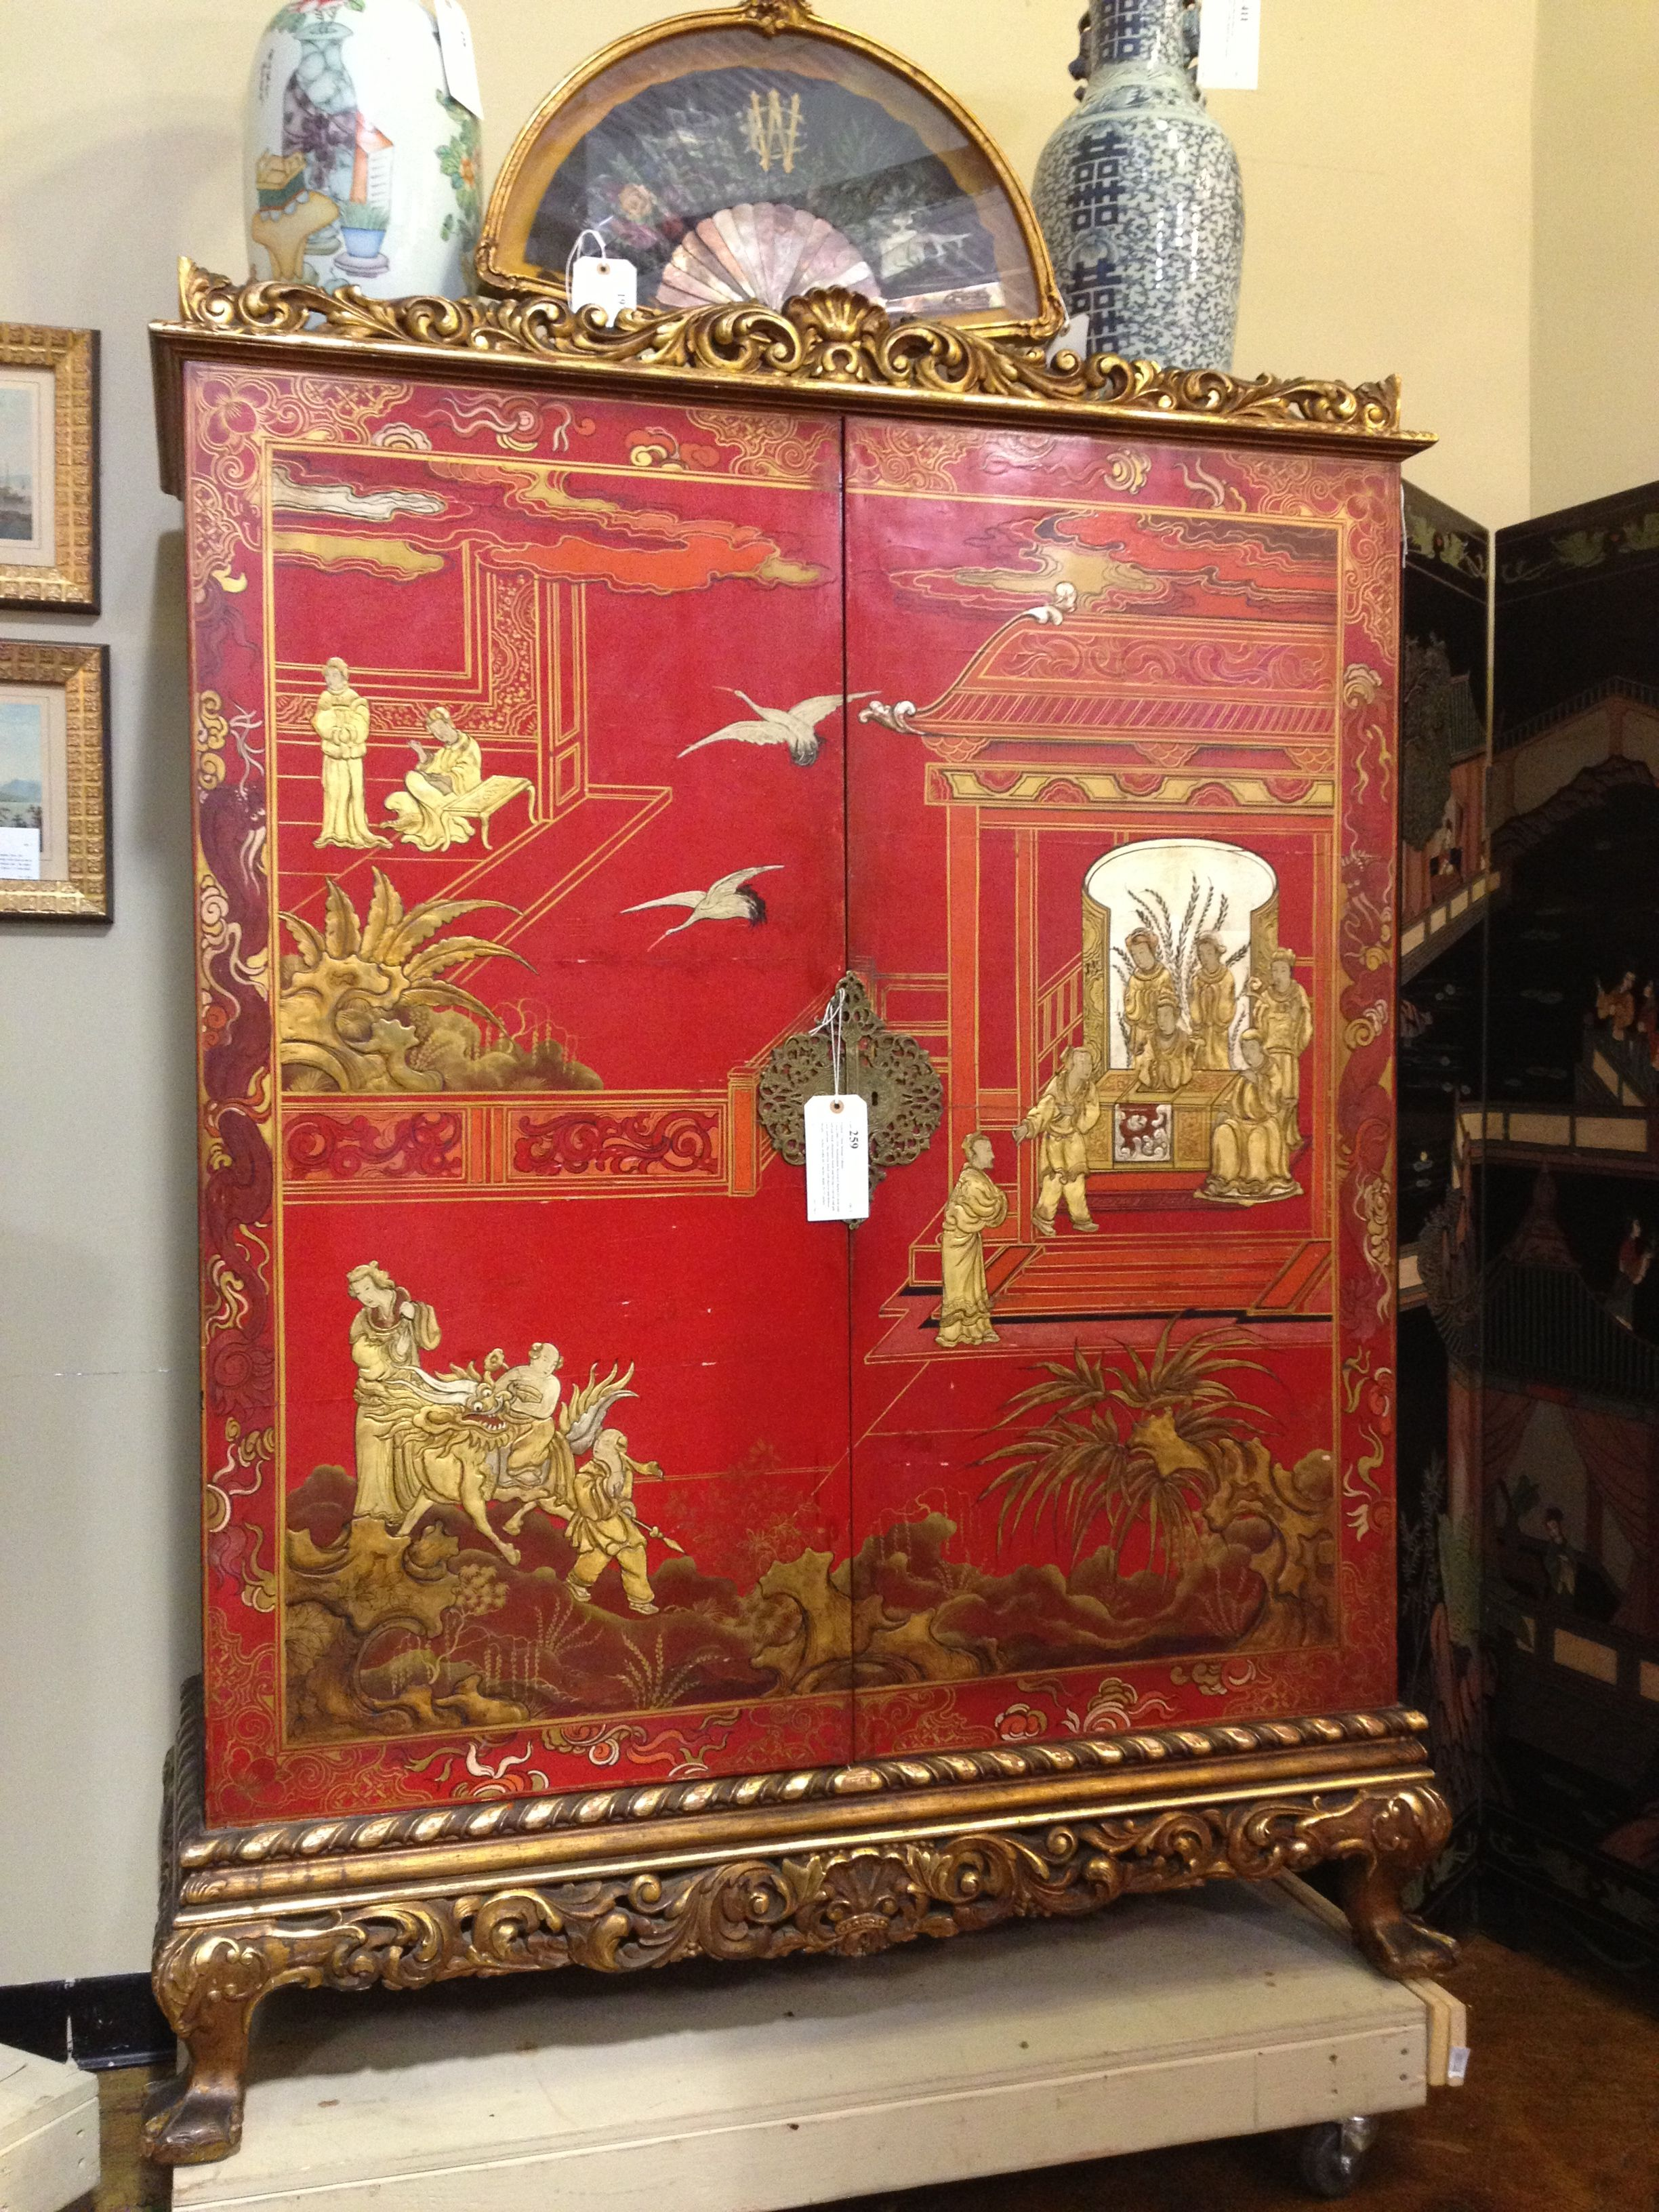 http://www.pinterest.com/joliesarts ∗  »☆Elysian-Interiors ♕Simply divine #Interiordesign ~ Chinese & Asian style Interiors ~ Red lacquer chinoiserie chest